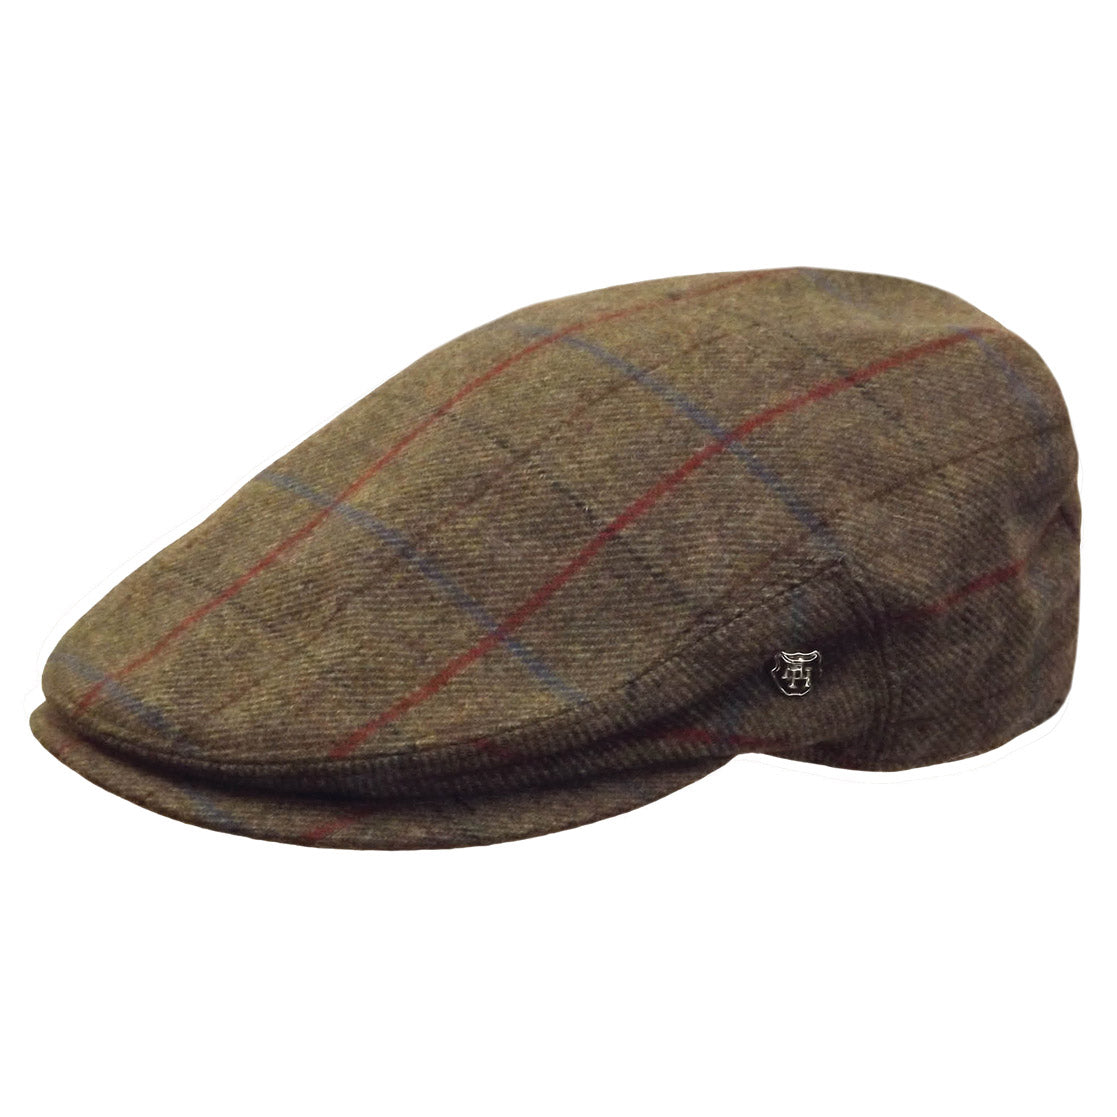 2c8a864b01e Hills Bingley Check Lambswool Tweed Cheesecutter Cap – City Hatters